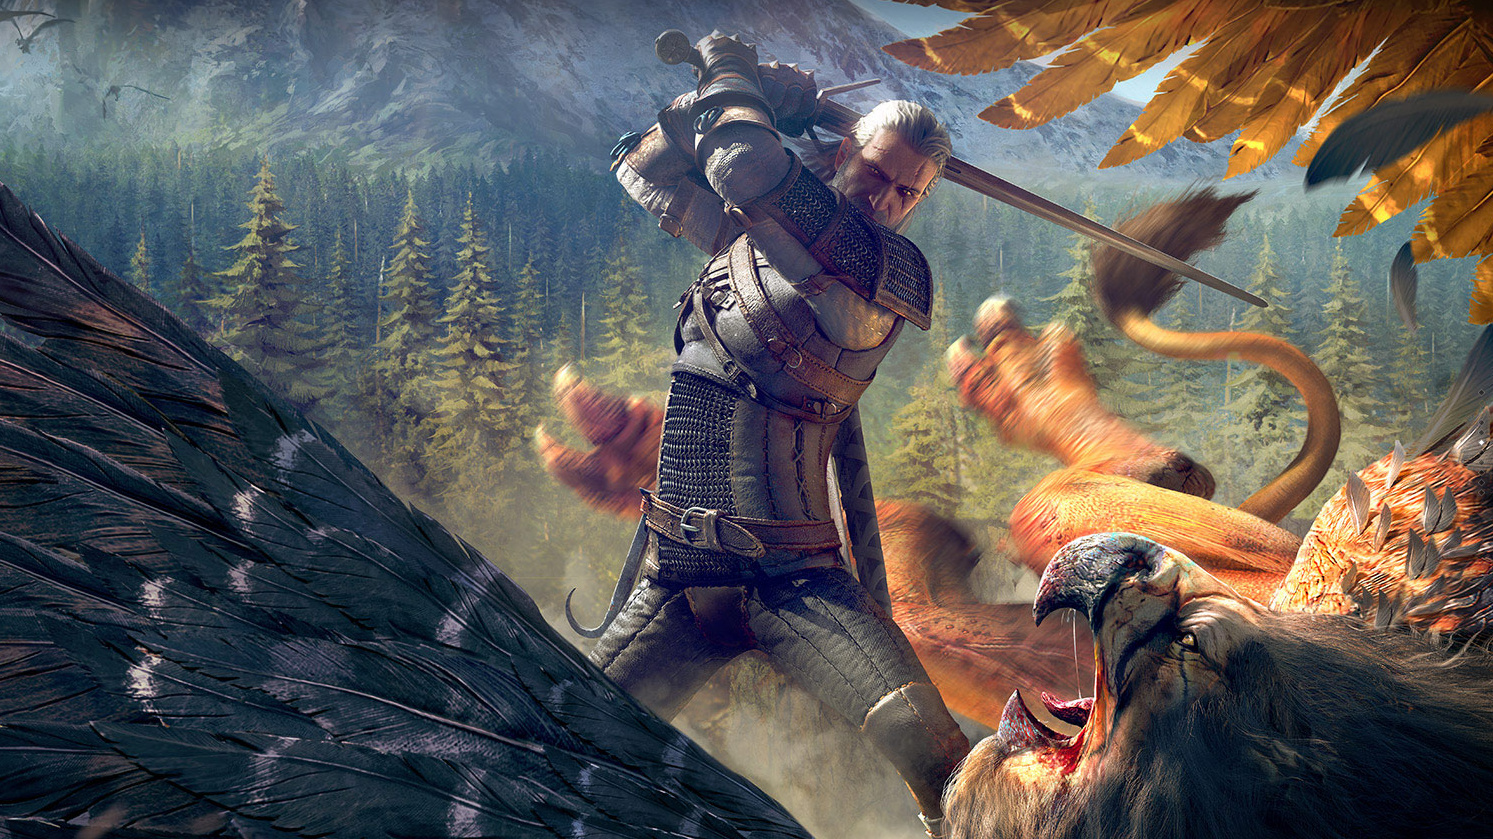 The Witcher 3 Switch Port Started Development Just 12 Months